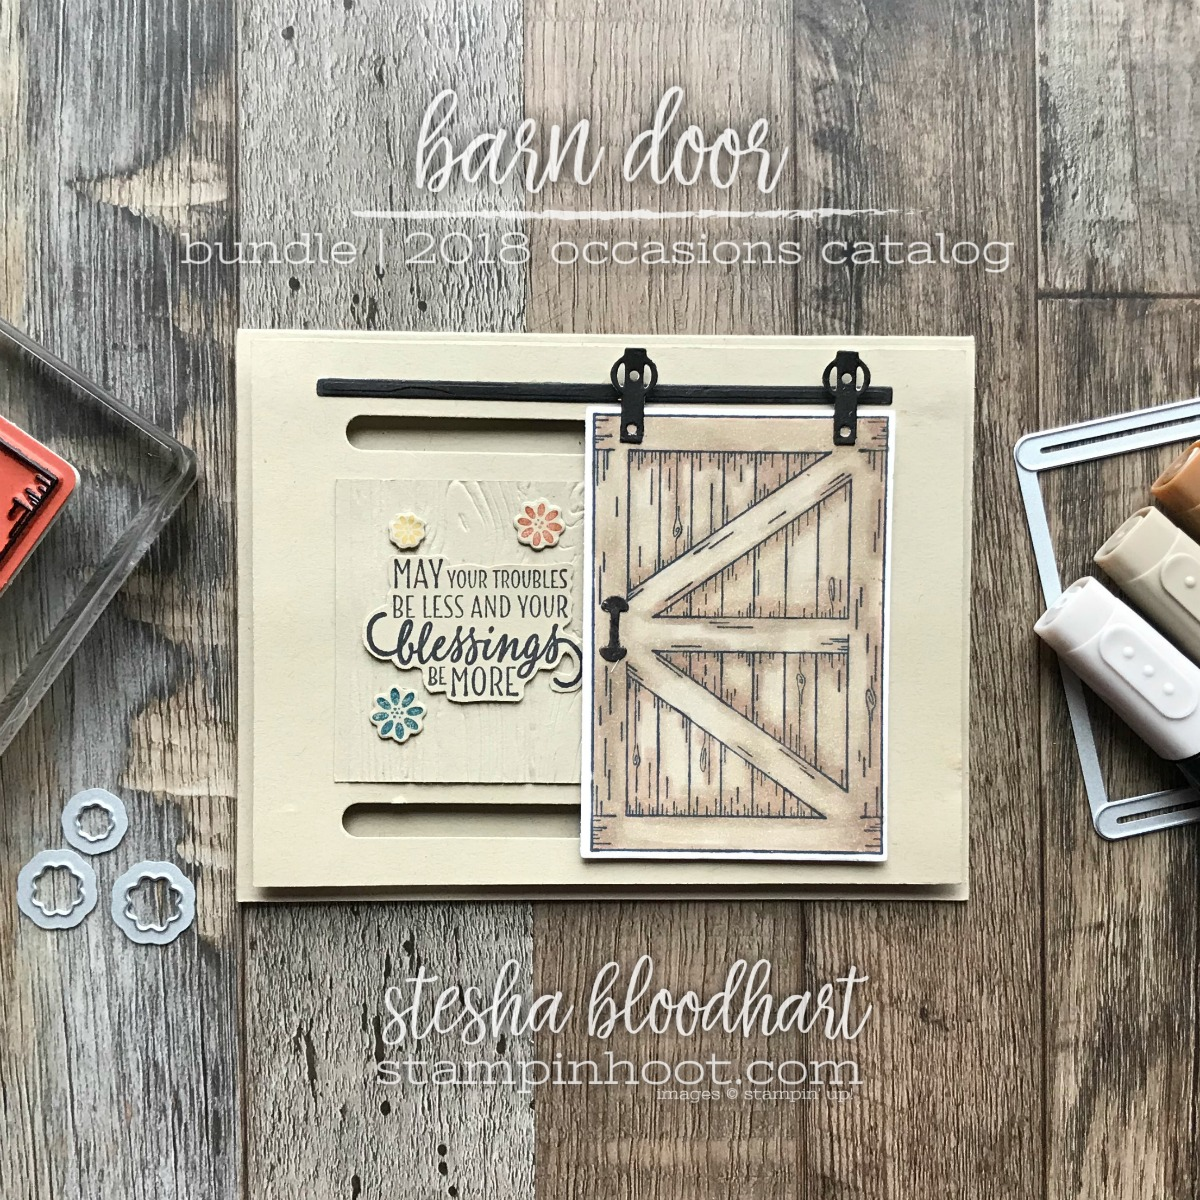 Barn Door Bundle by Stampin' Up! from the 2018 Occasions Catalog for #tgifc142 by Stesha Bloodhart, Stampin' Hoot! #steshabloodhart #stampinhoot